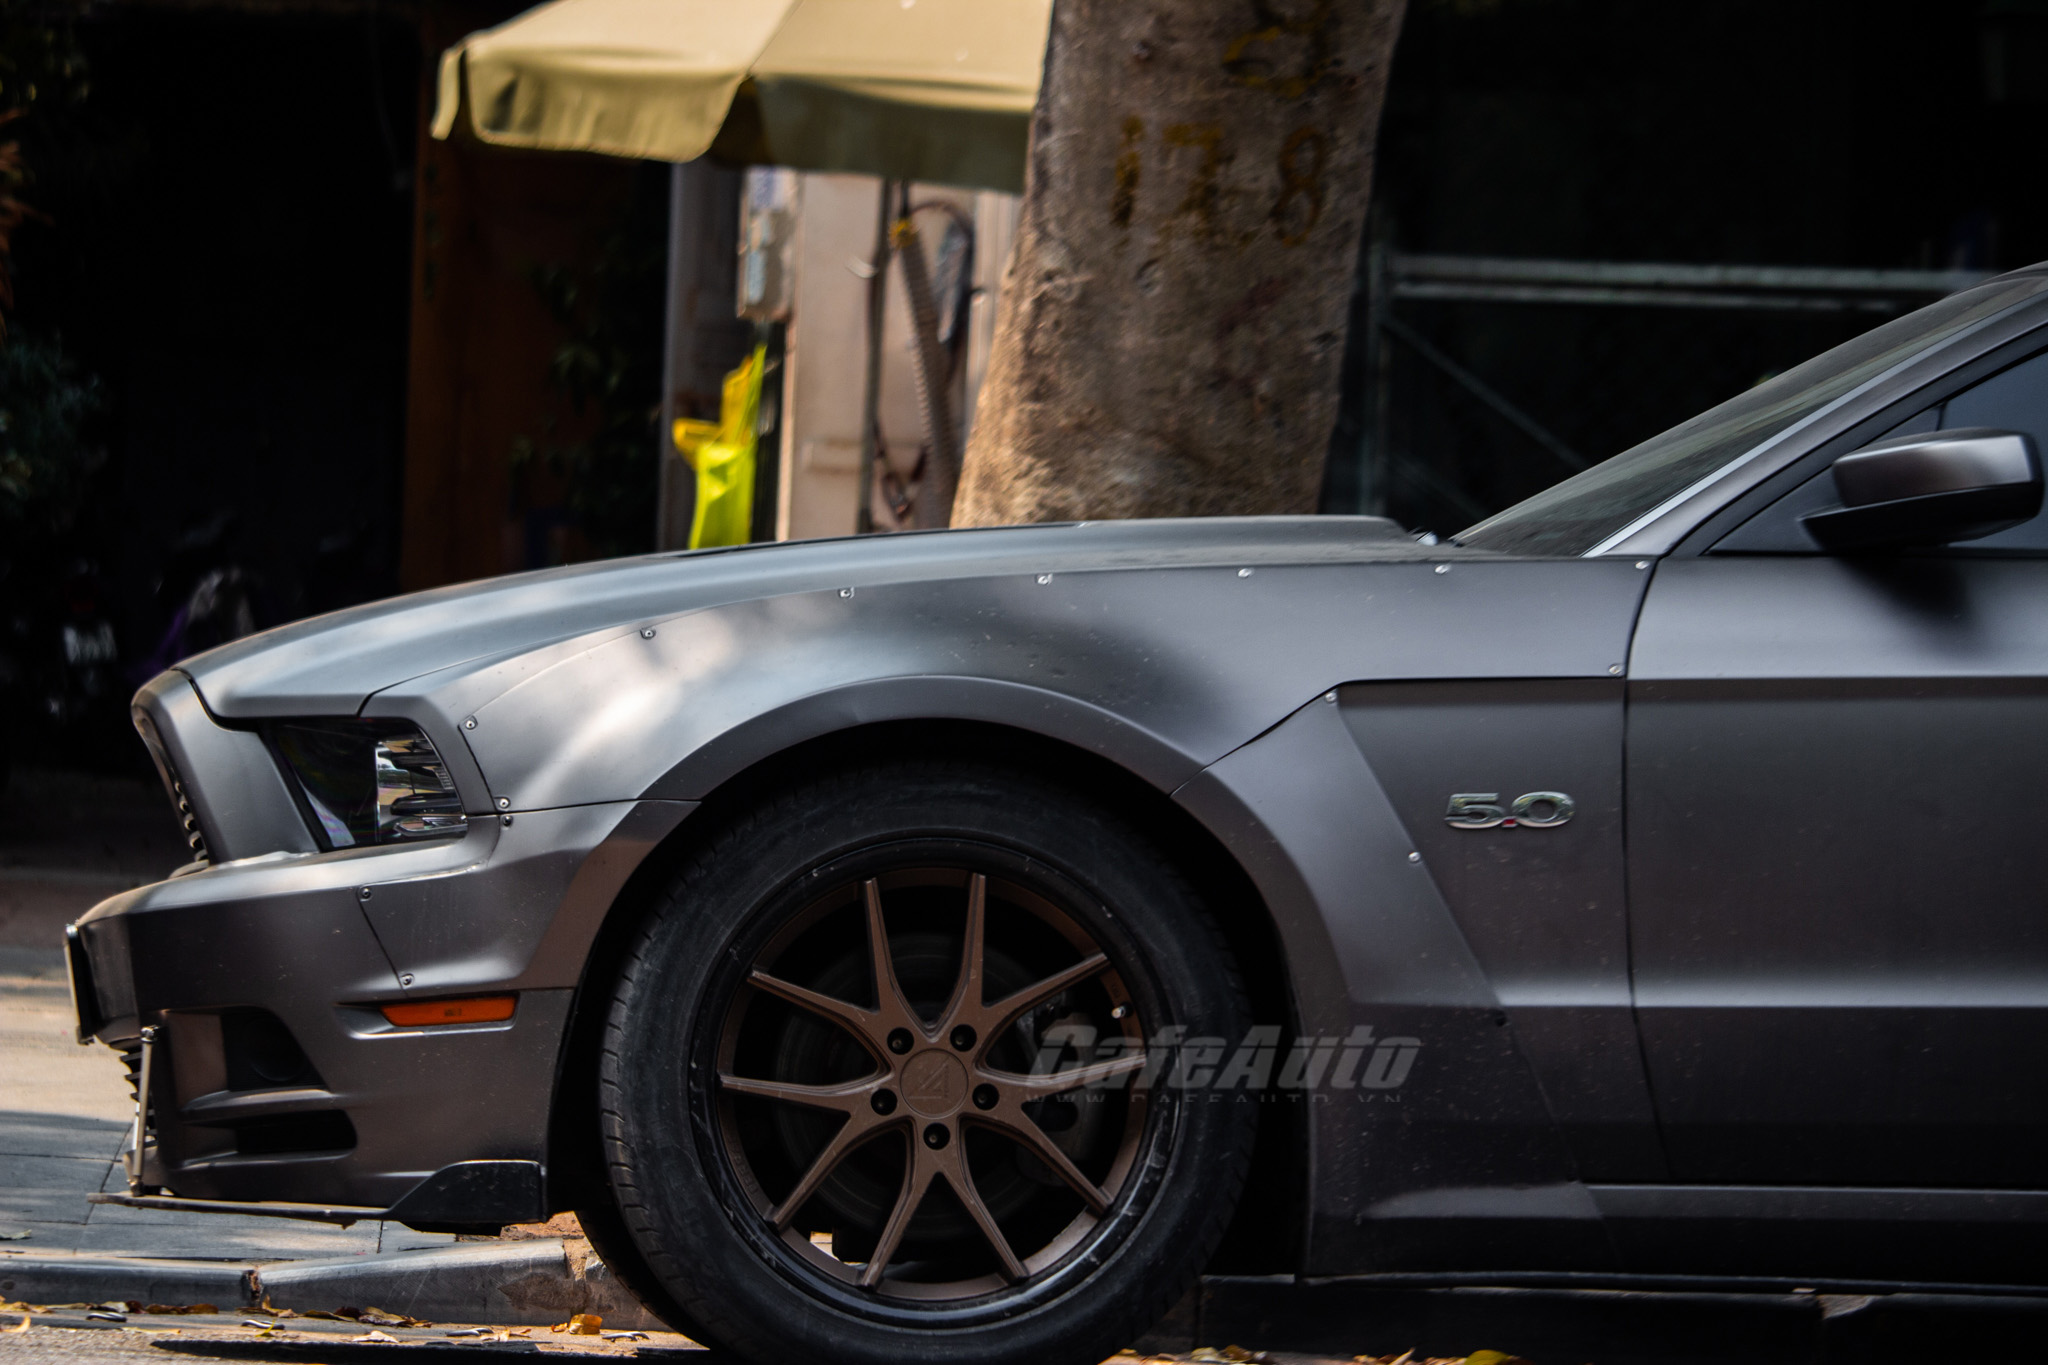 mustangGT-cafeautovn-7